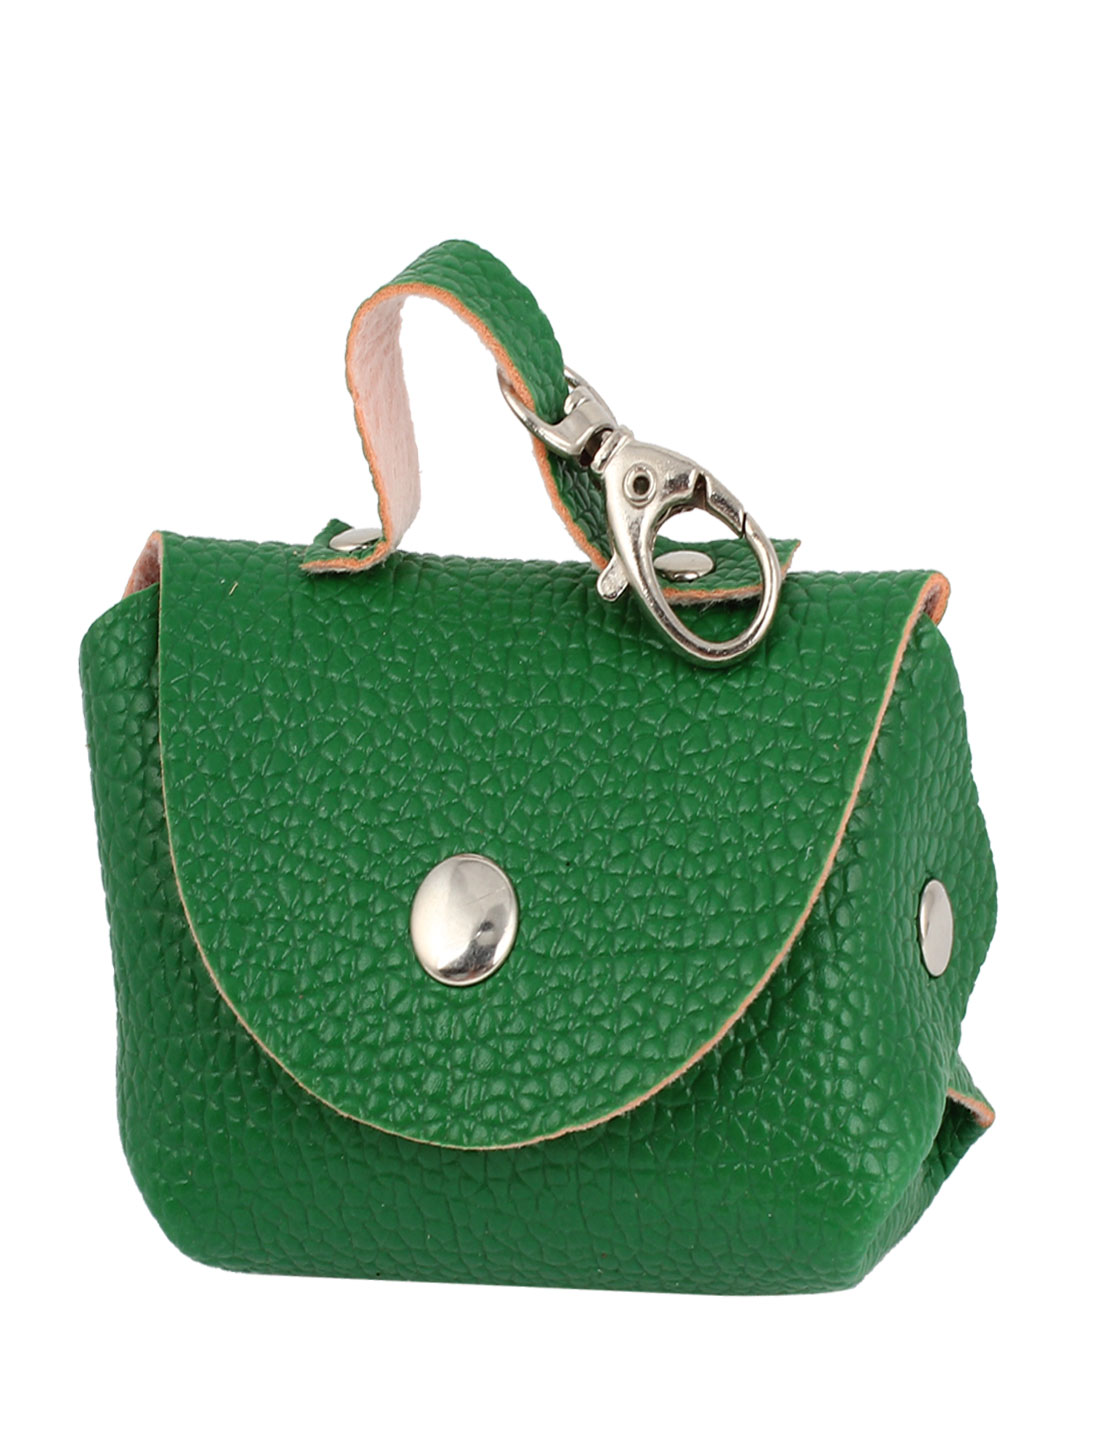 Green Faux Leather Litchi Prints Press Stud Closure Coin Purse Keys Bag